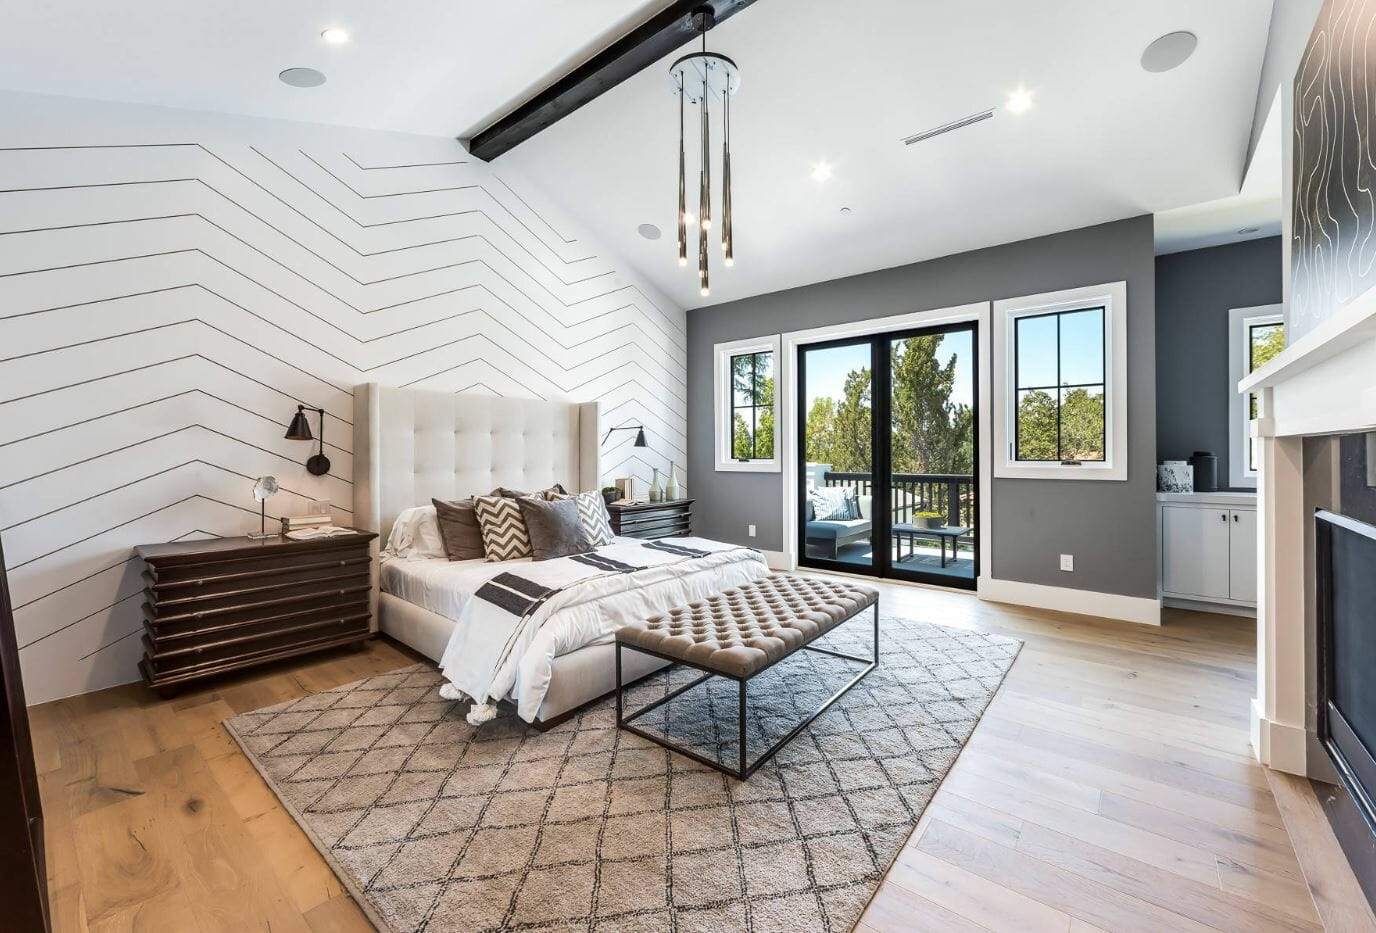 bedroom interior design feature